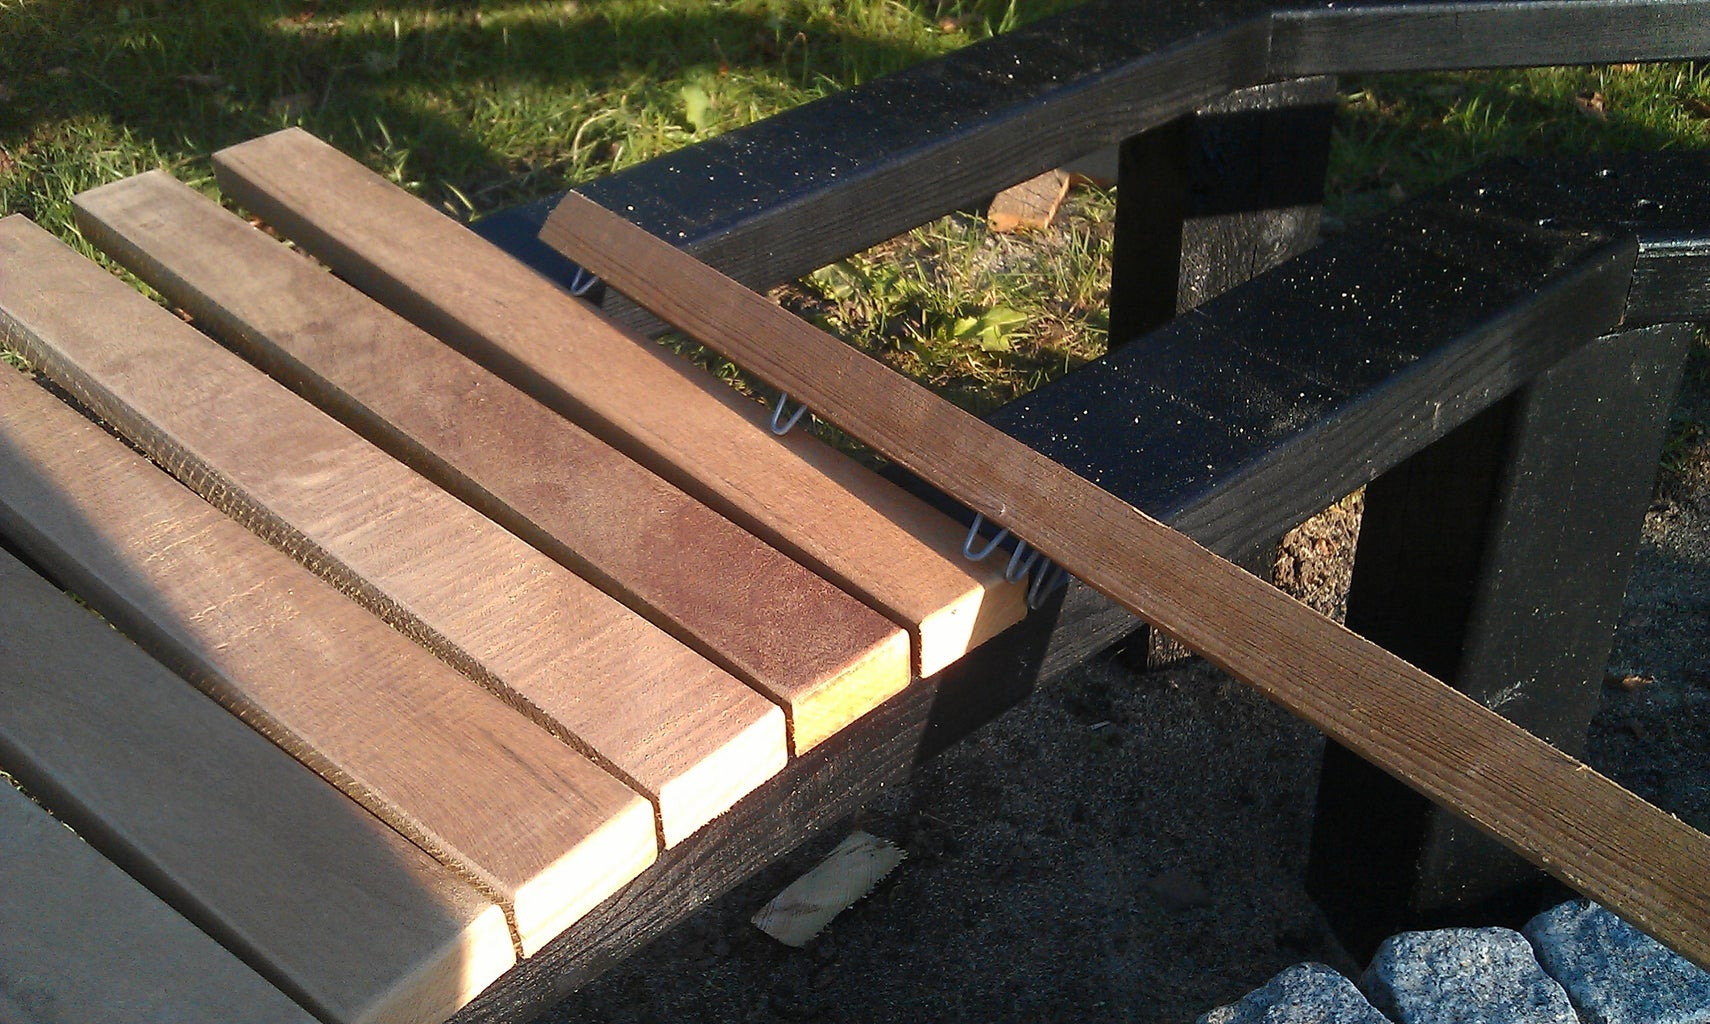 Placing the Hard-wood Rods